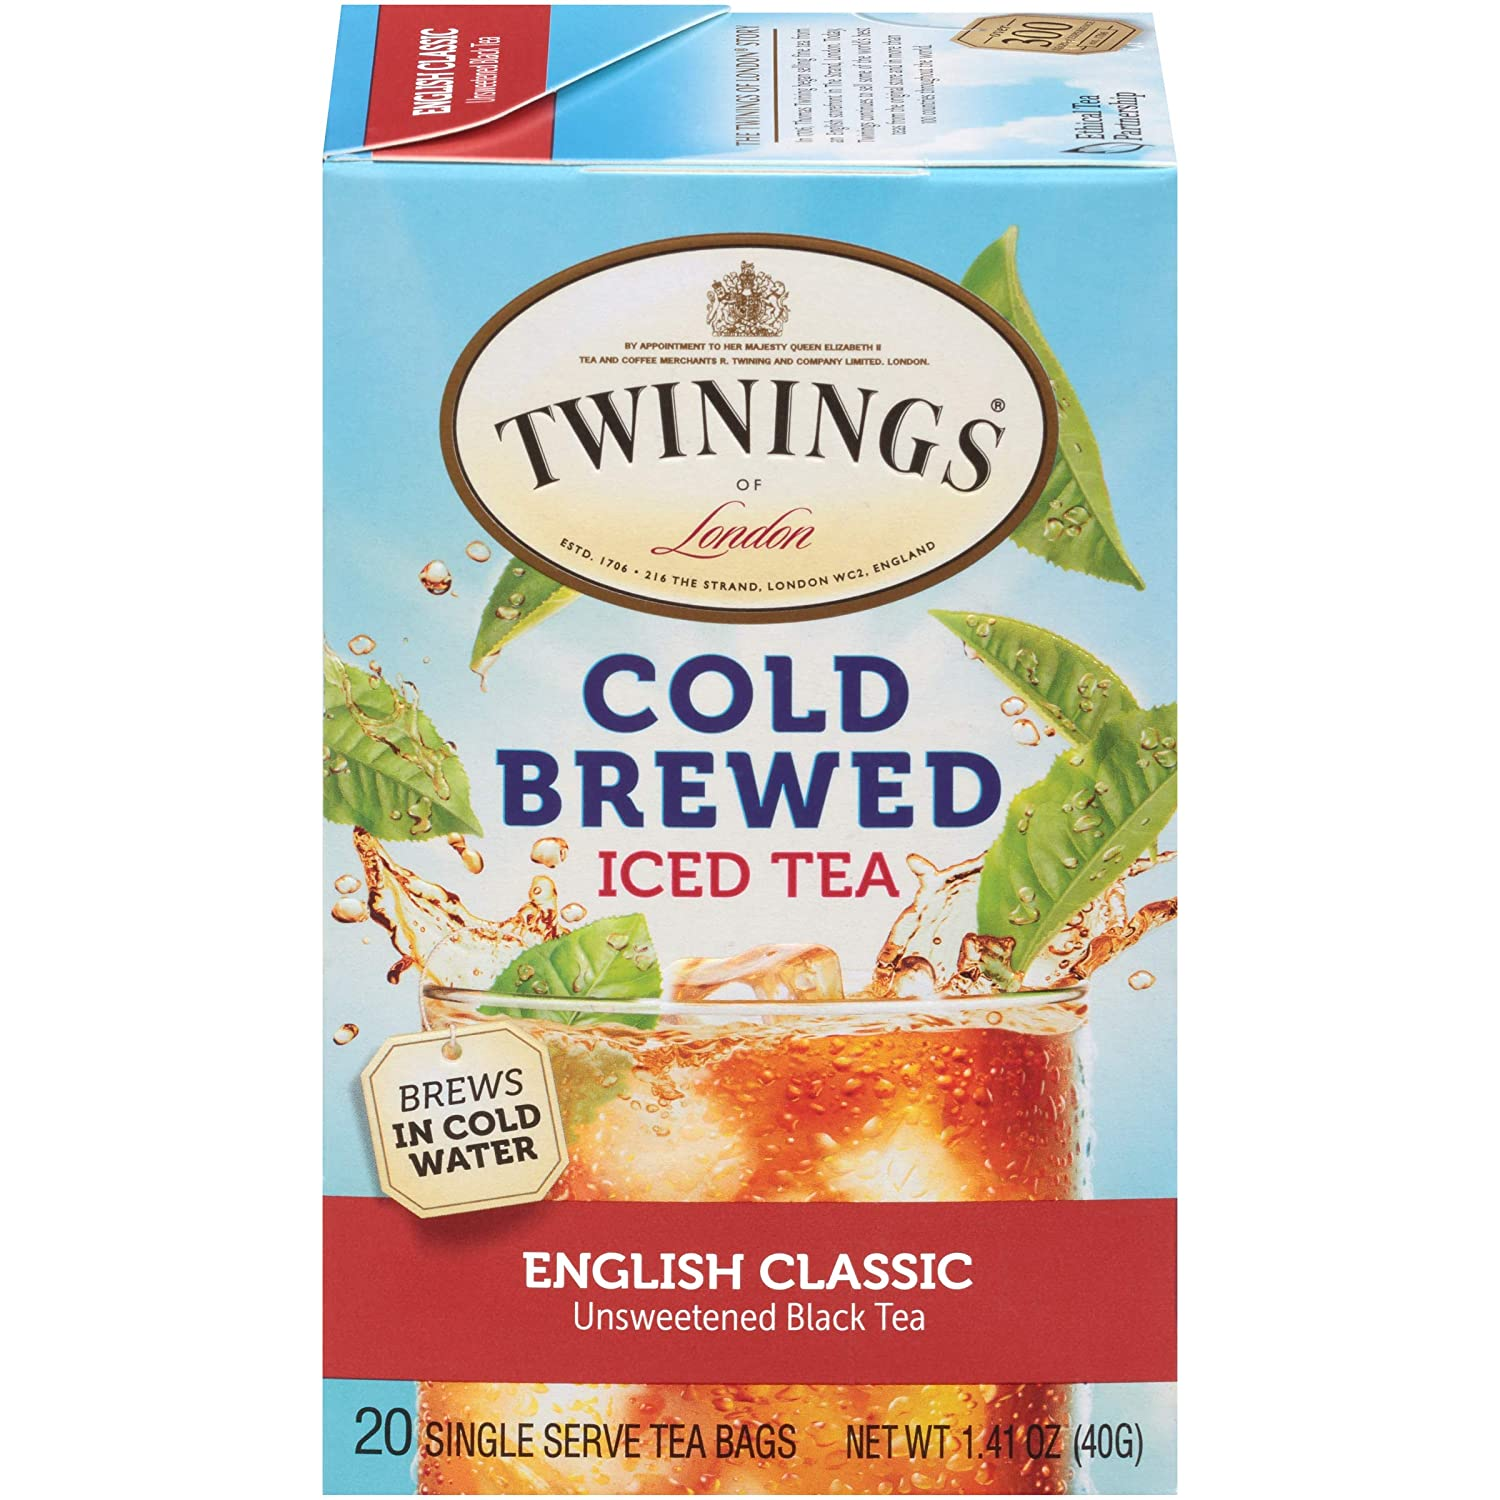 Twinings of London English Classic Cold Brewed Iced Tea Bags, 20 Count (Pack of 6)